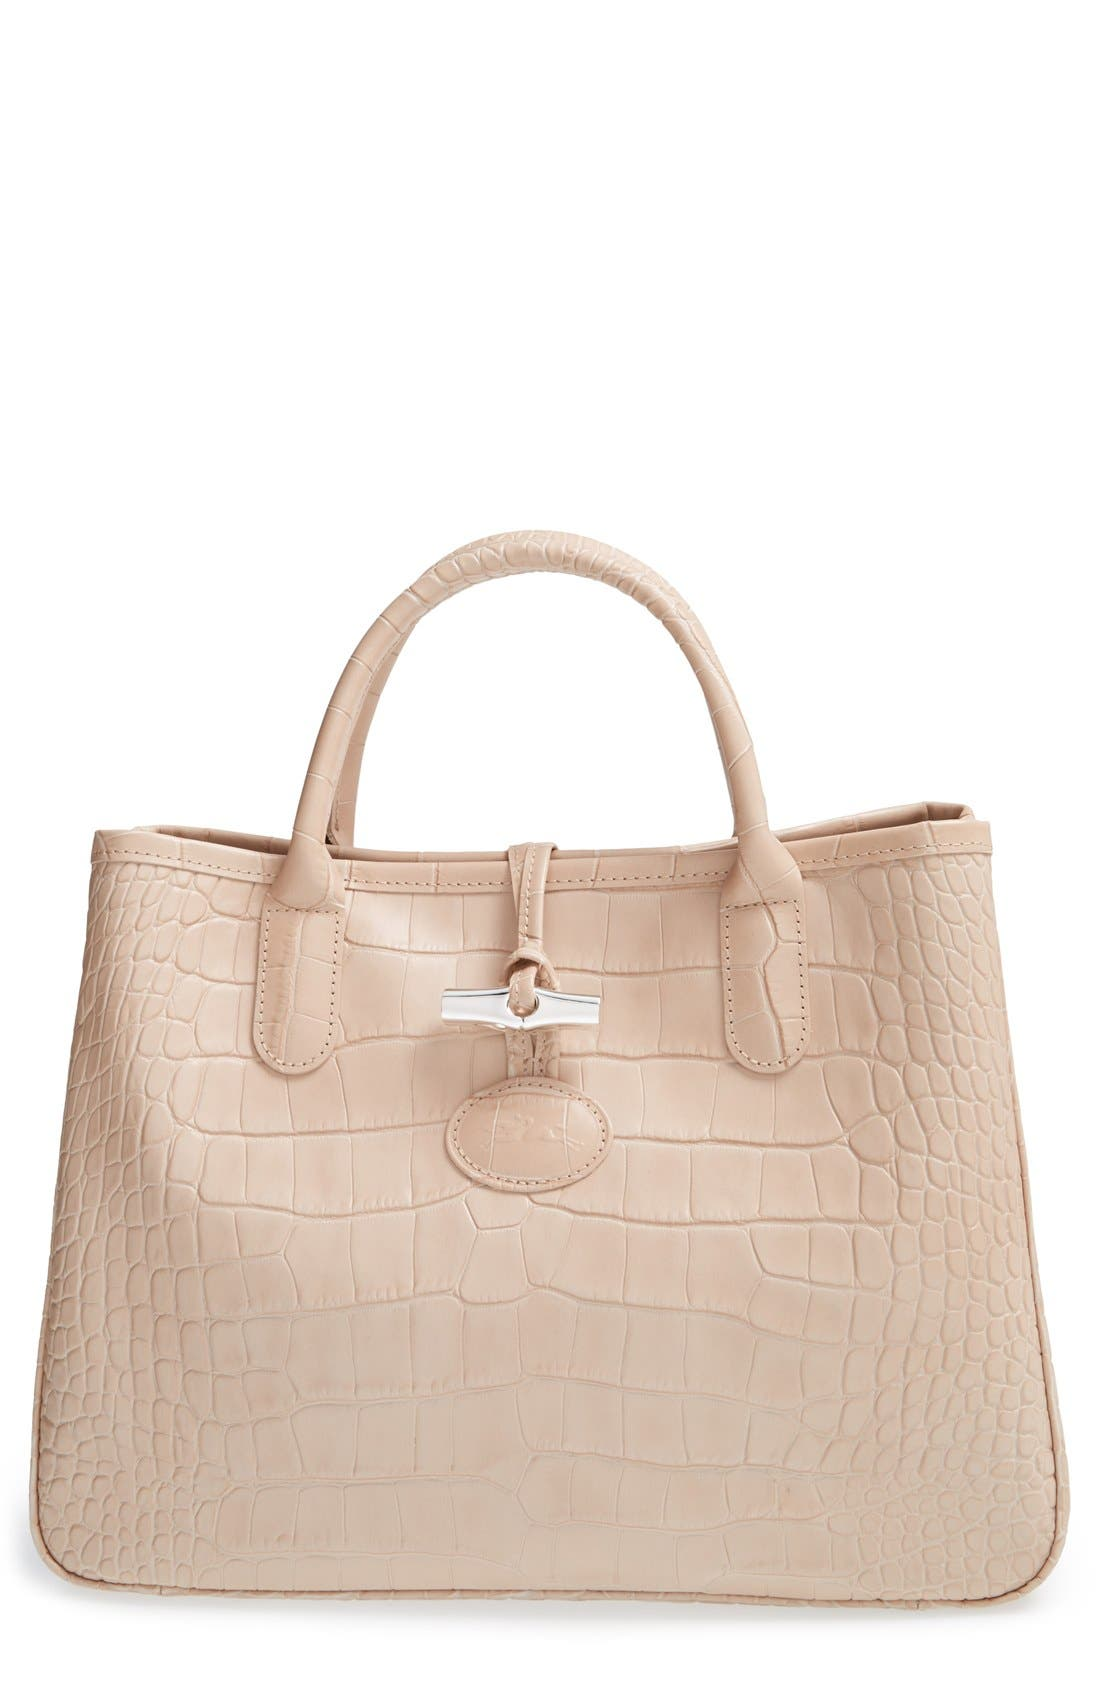 Main Image - Longchamp 'Small Roseau Croco' Shoulder Tote